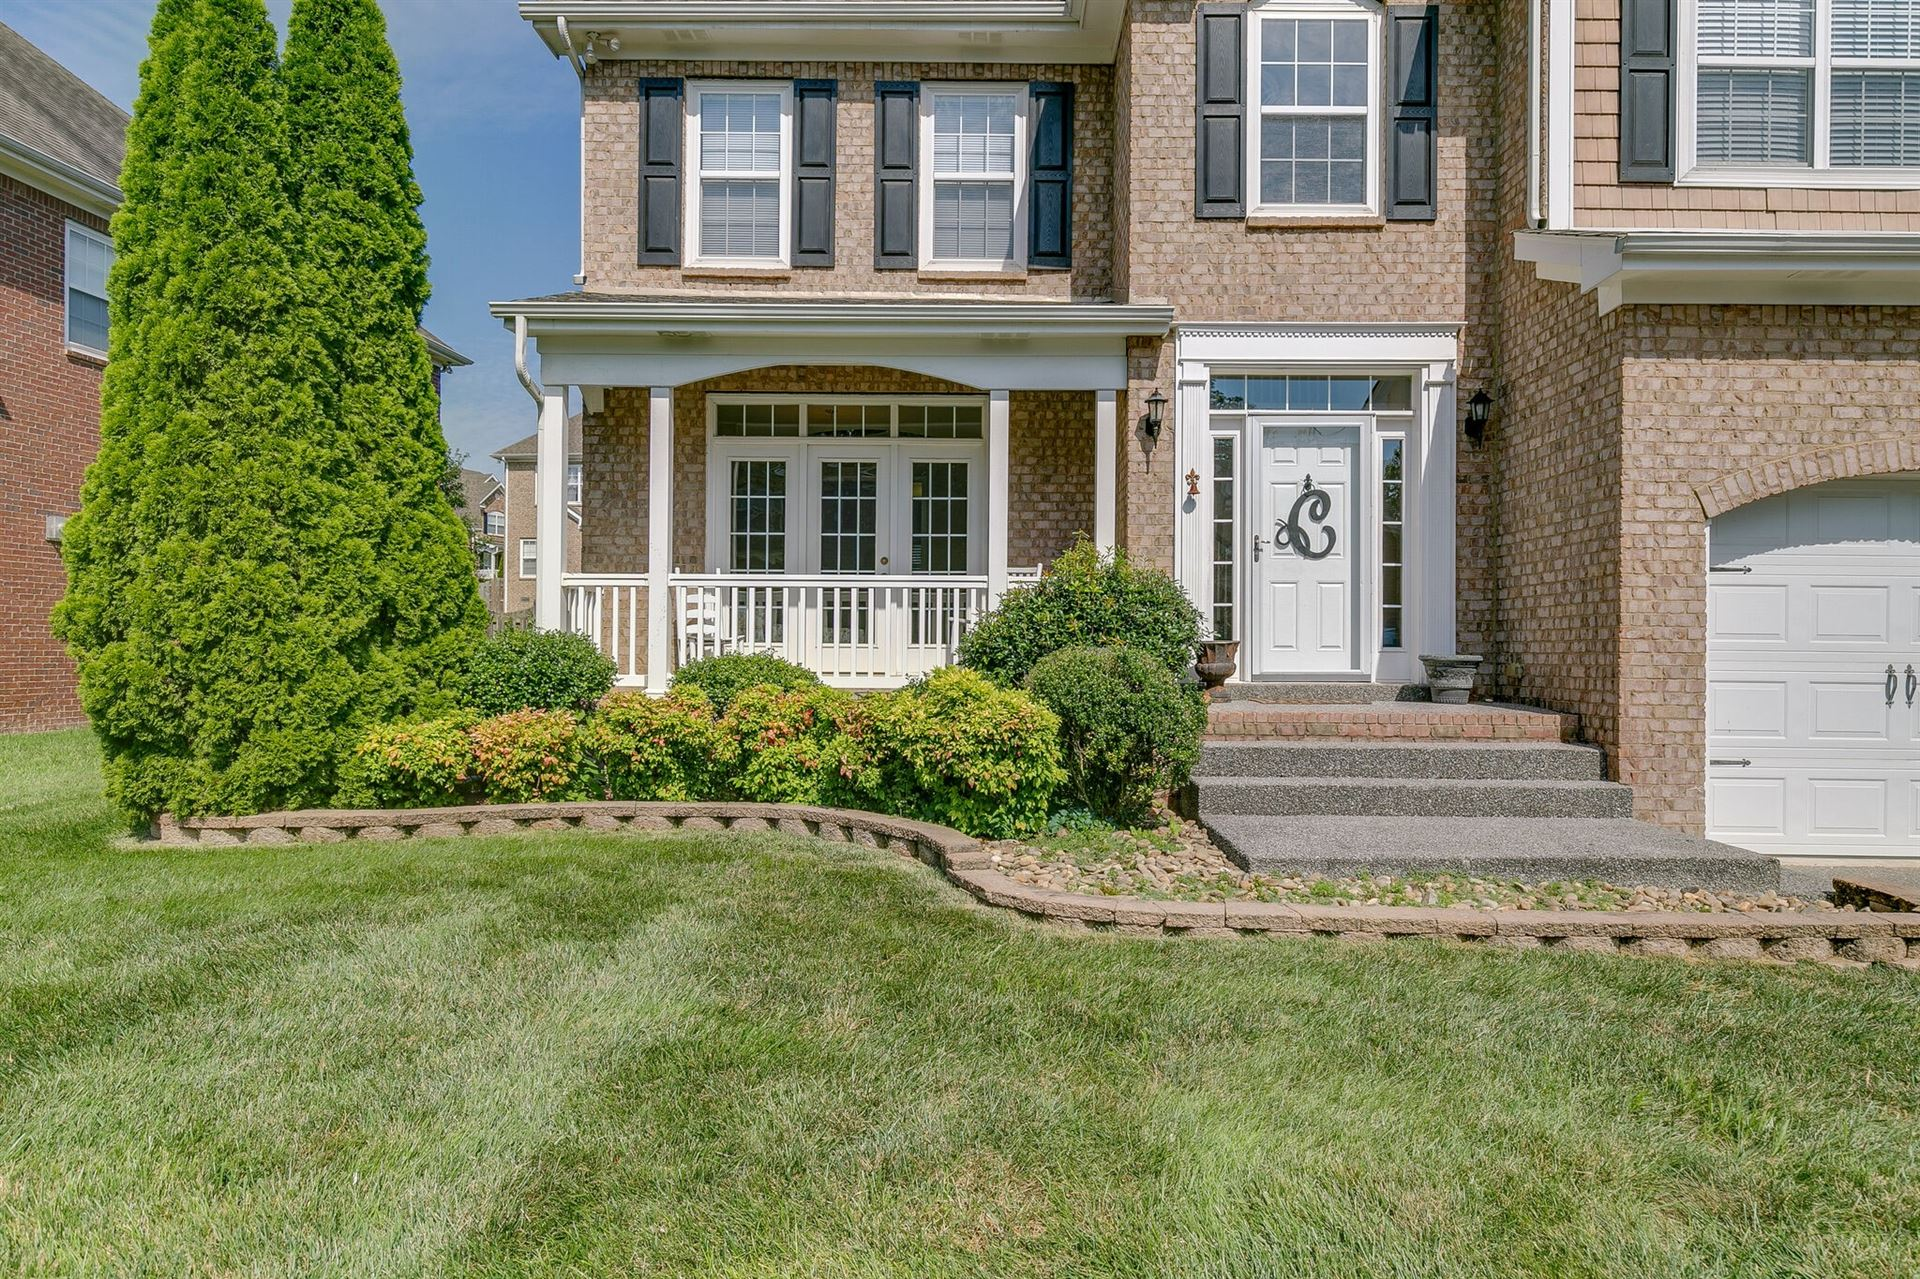 Photo of 1025 Belcor Dr, Spring Hill, TN 37174 (MLS # 2177907)